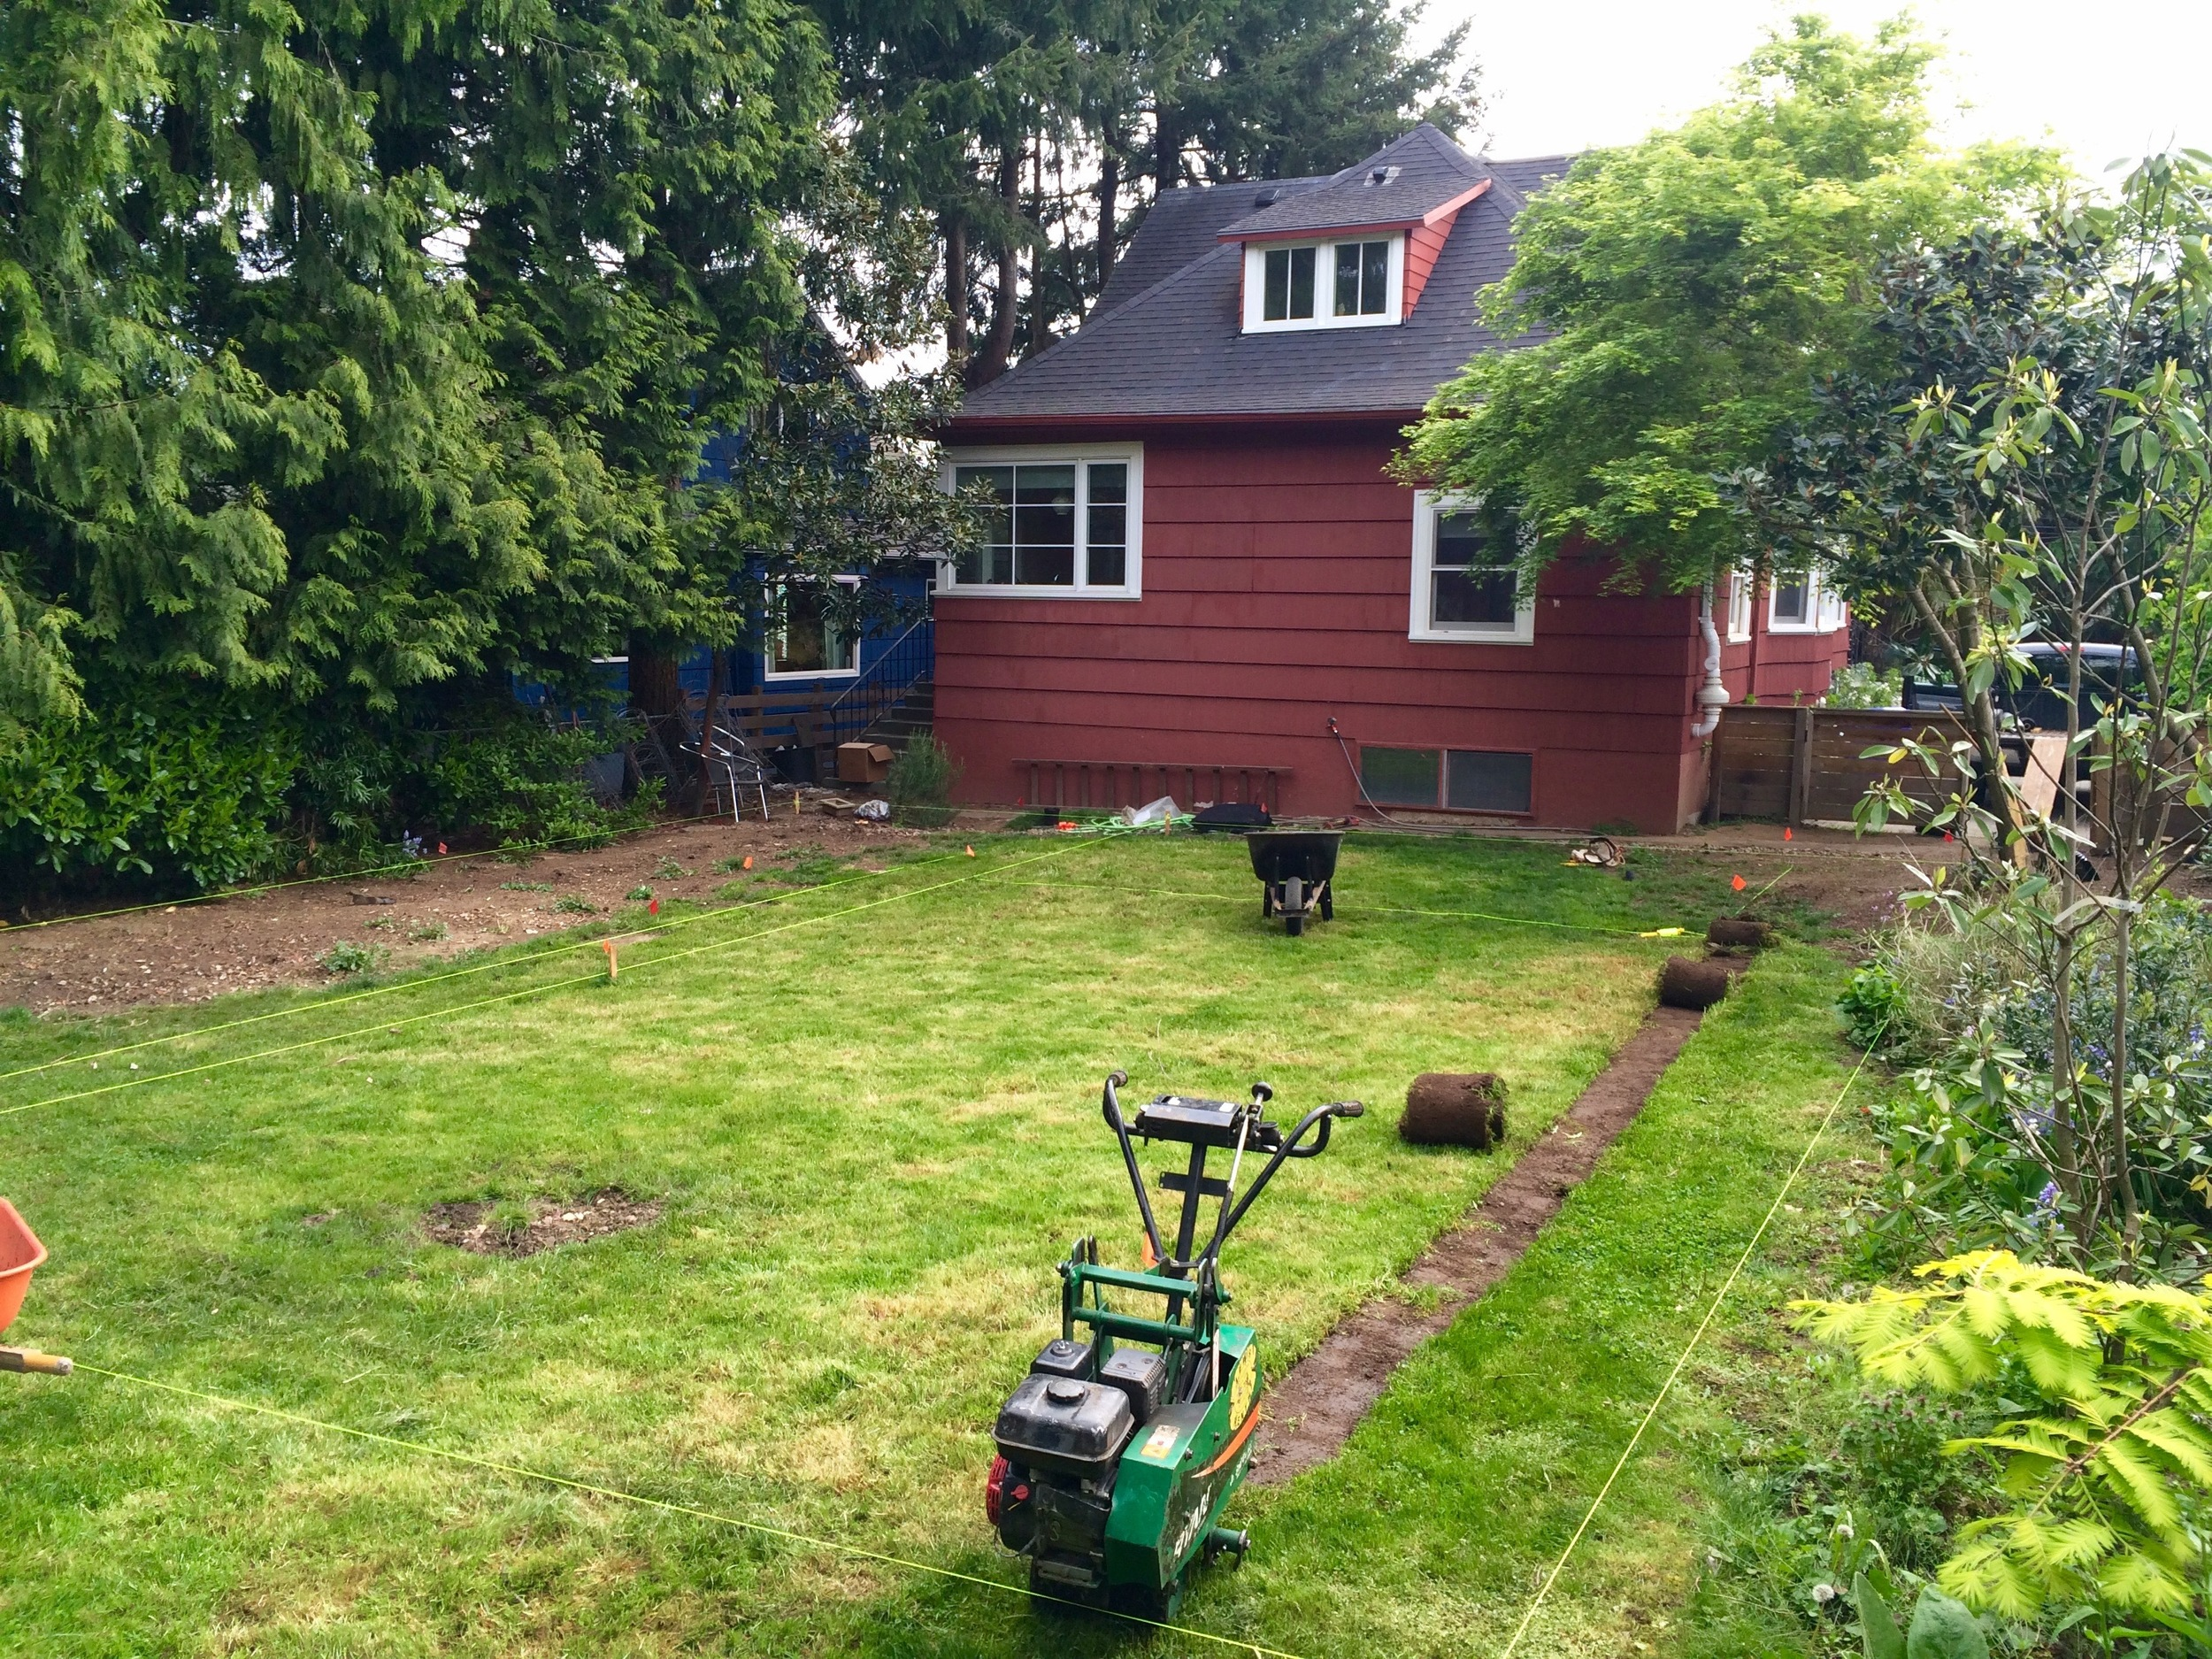 Sod Removal on day 1 of one of our biggest projects to date:  A complete backyard overhaul!